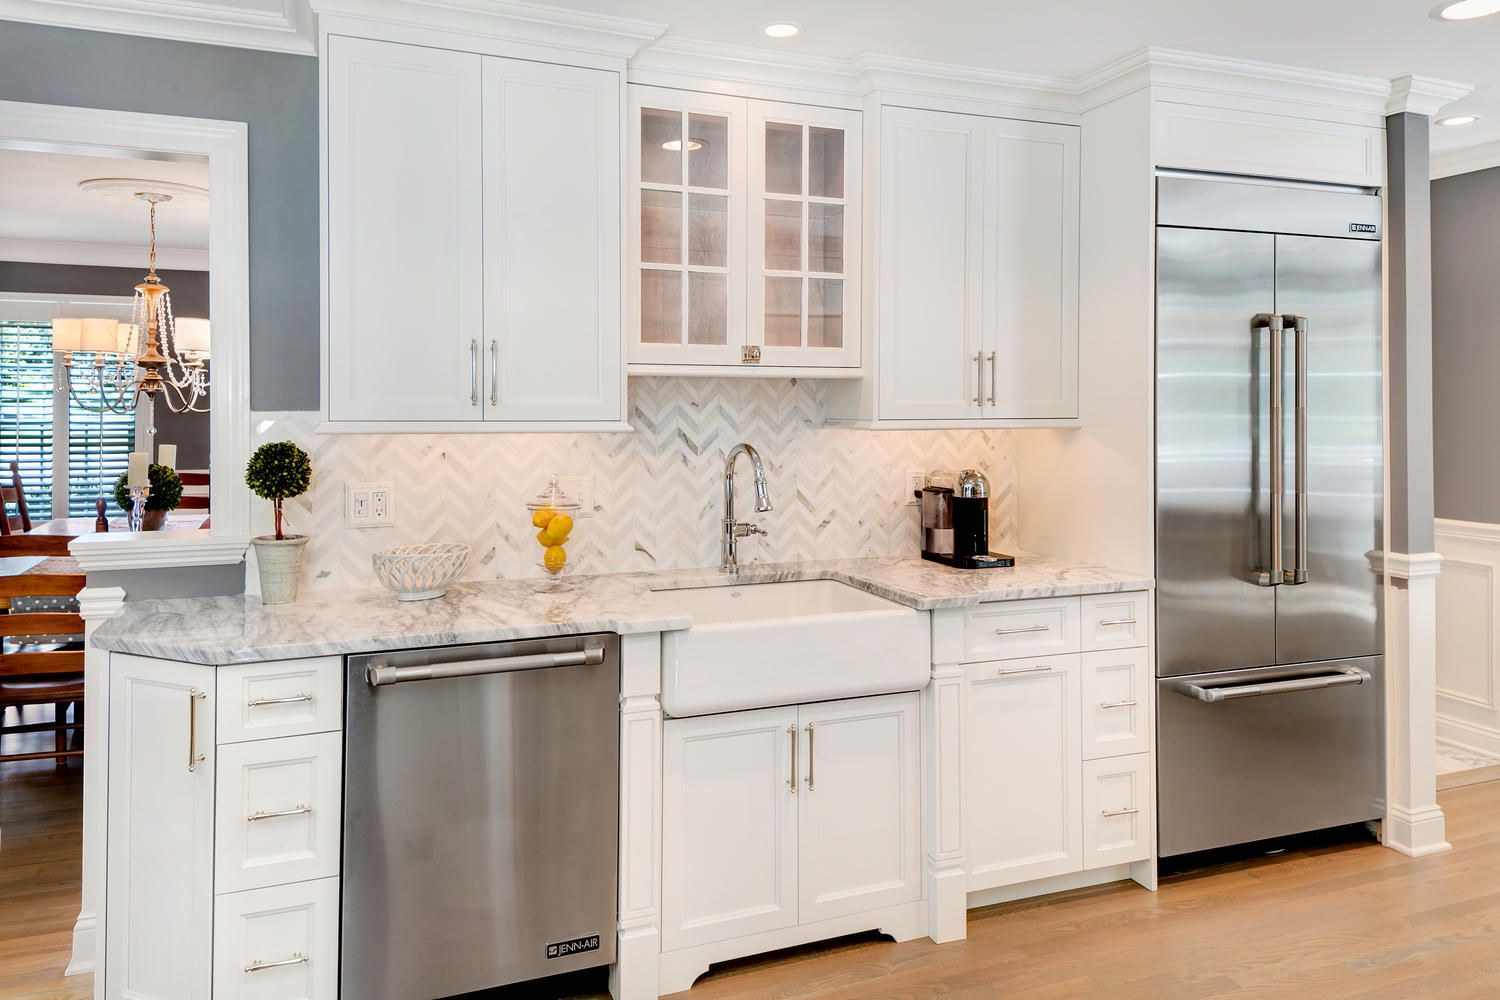 Timeless Grey And White Kitchen In Middletown Gray And White Kitchen White Shaker Kitchen Cabinets White Kitchen Hood